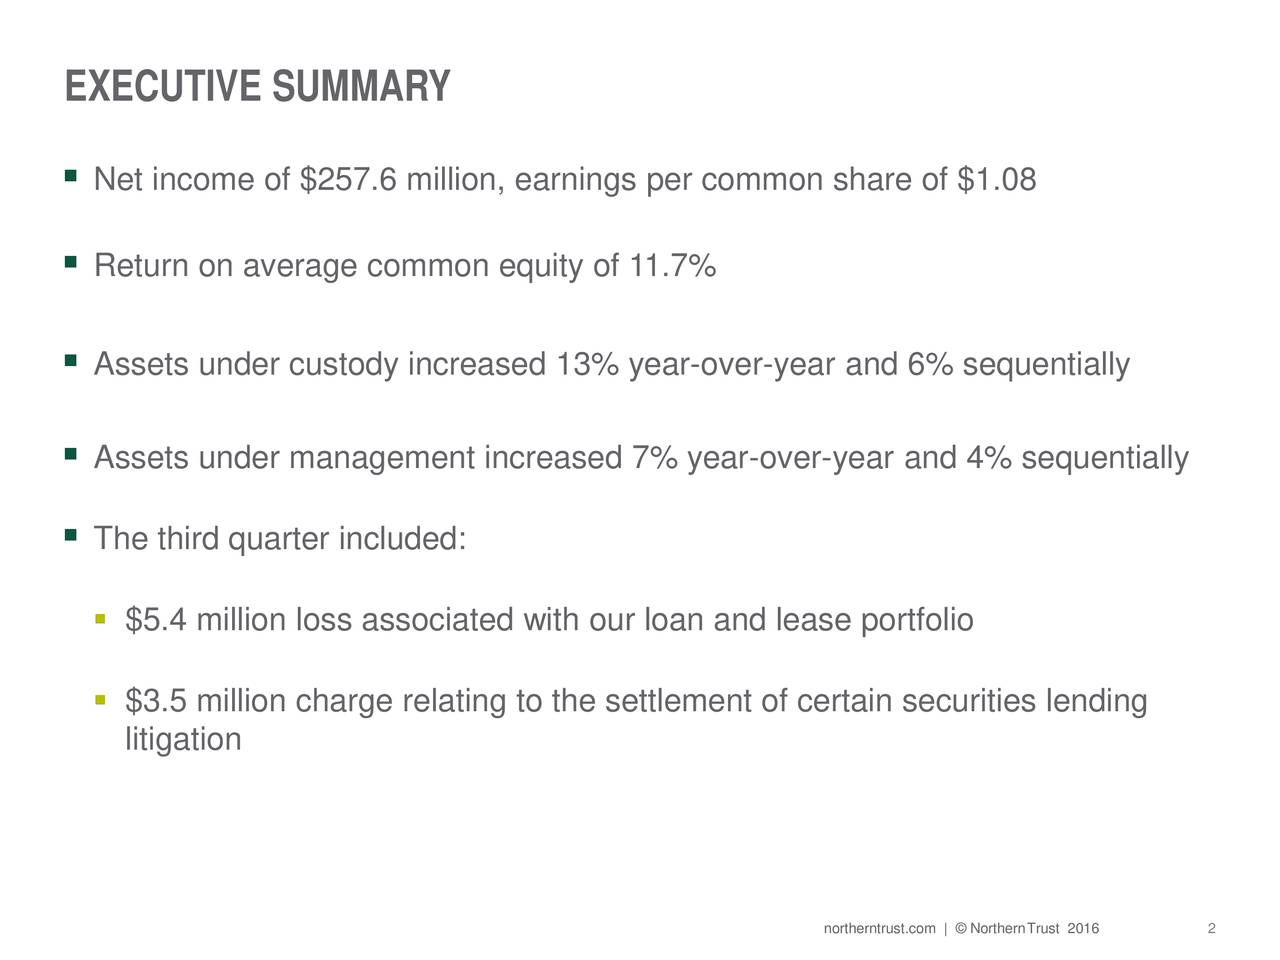 Net income of $257.6 million, earnings per common share of $1.08 Return on average common equity of 11.7% Assets under custody increased 13% year-over-year and 6% sequentially Assets under management increased 7% year-over-year and 4% sequentially The third quarter included: $5.4 million loss associated with our loan and lease portfolio $3.5 million charge relating to the settlement of certain securities lending litigation northerntrust.com    North2rnTrust 2016